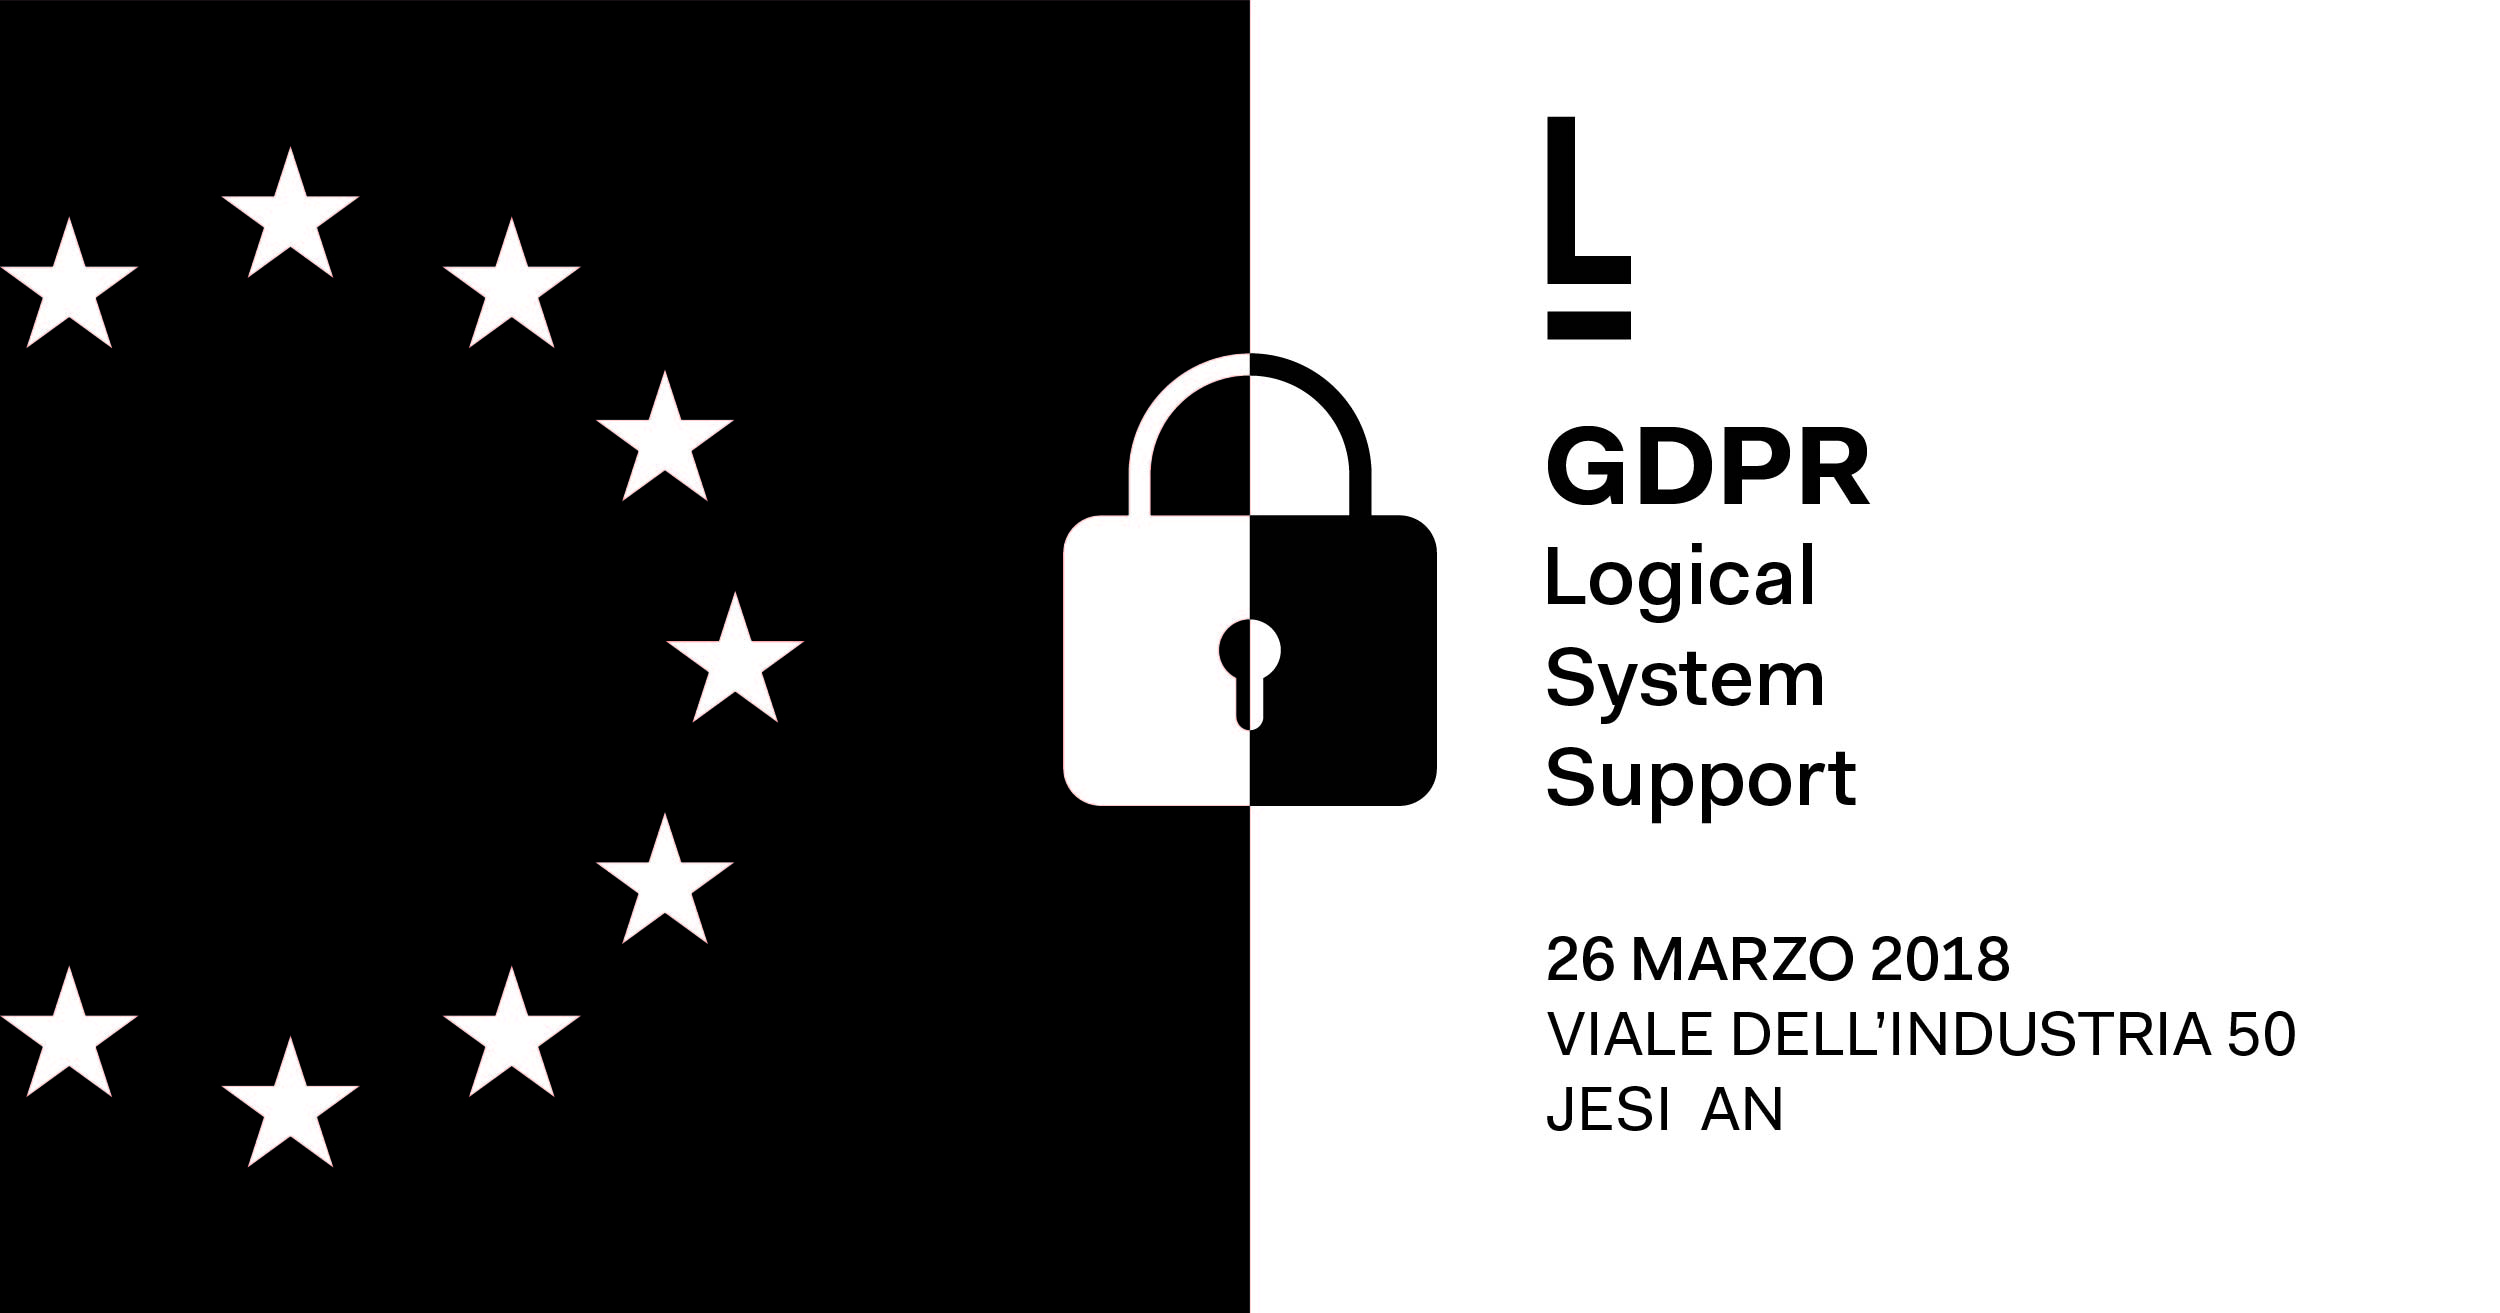 GDPR Logical System Support - Lunedì 26 Marzo, ore 14.30 - Jesi | LogicalSystem